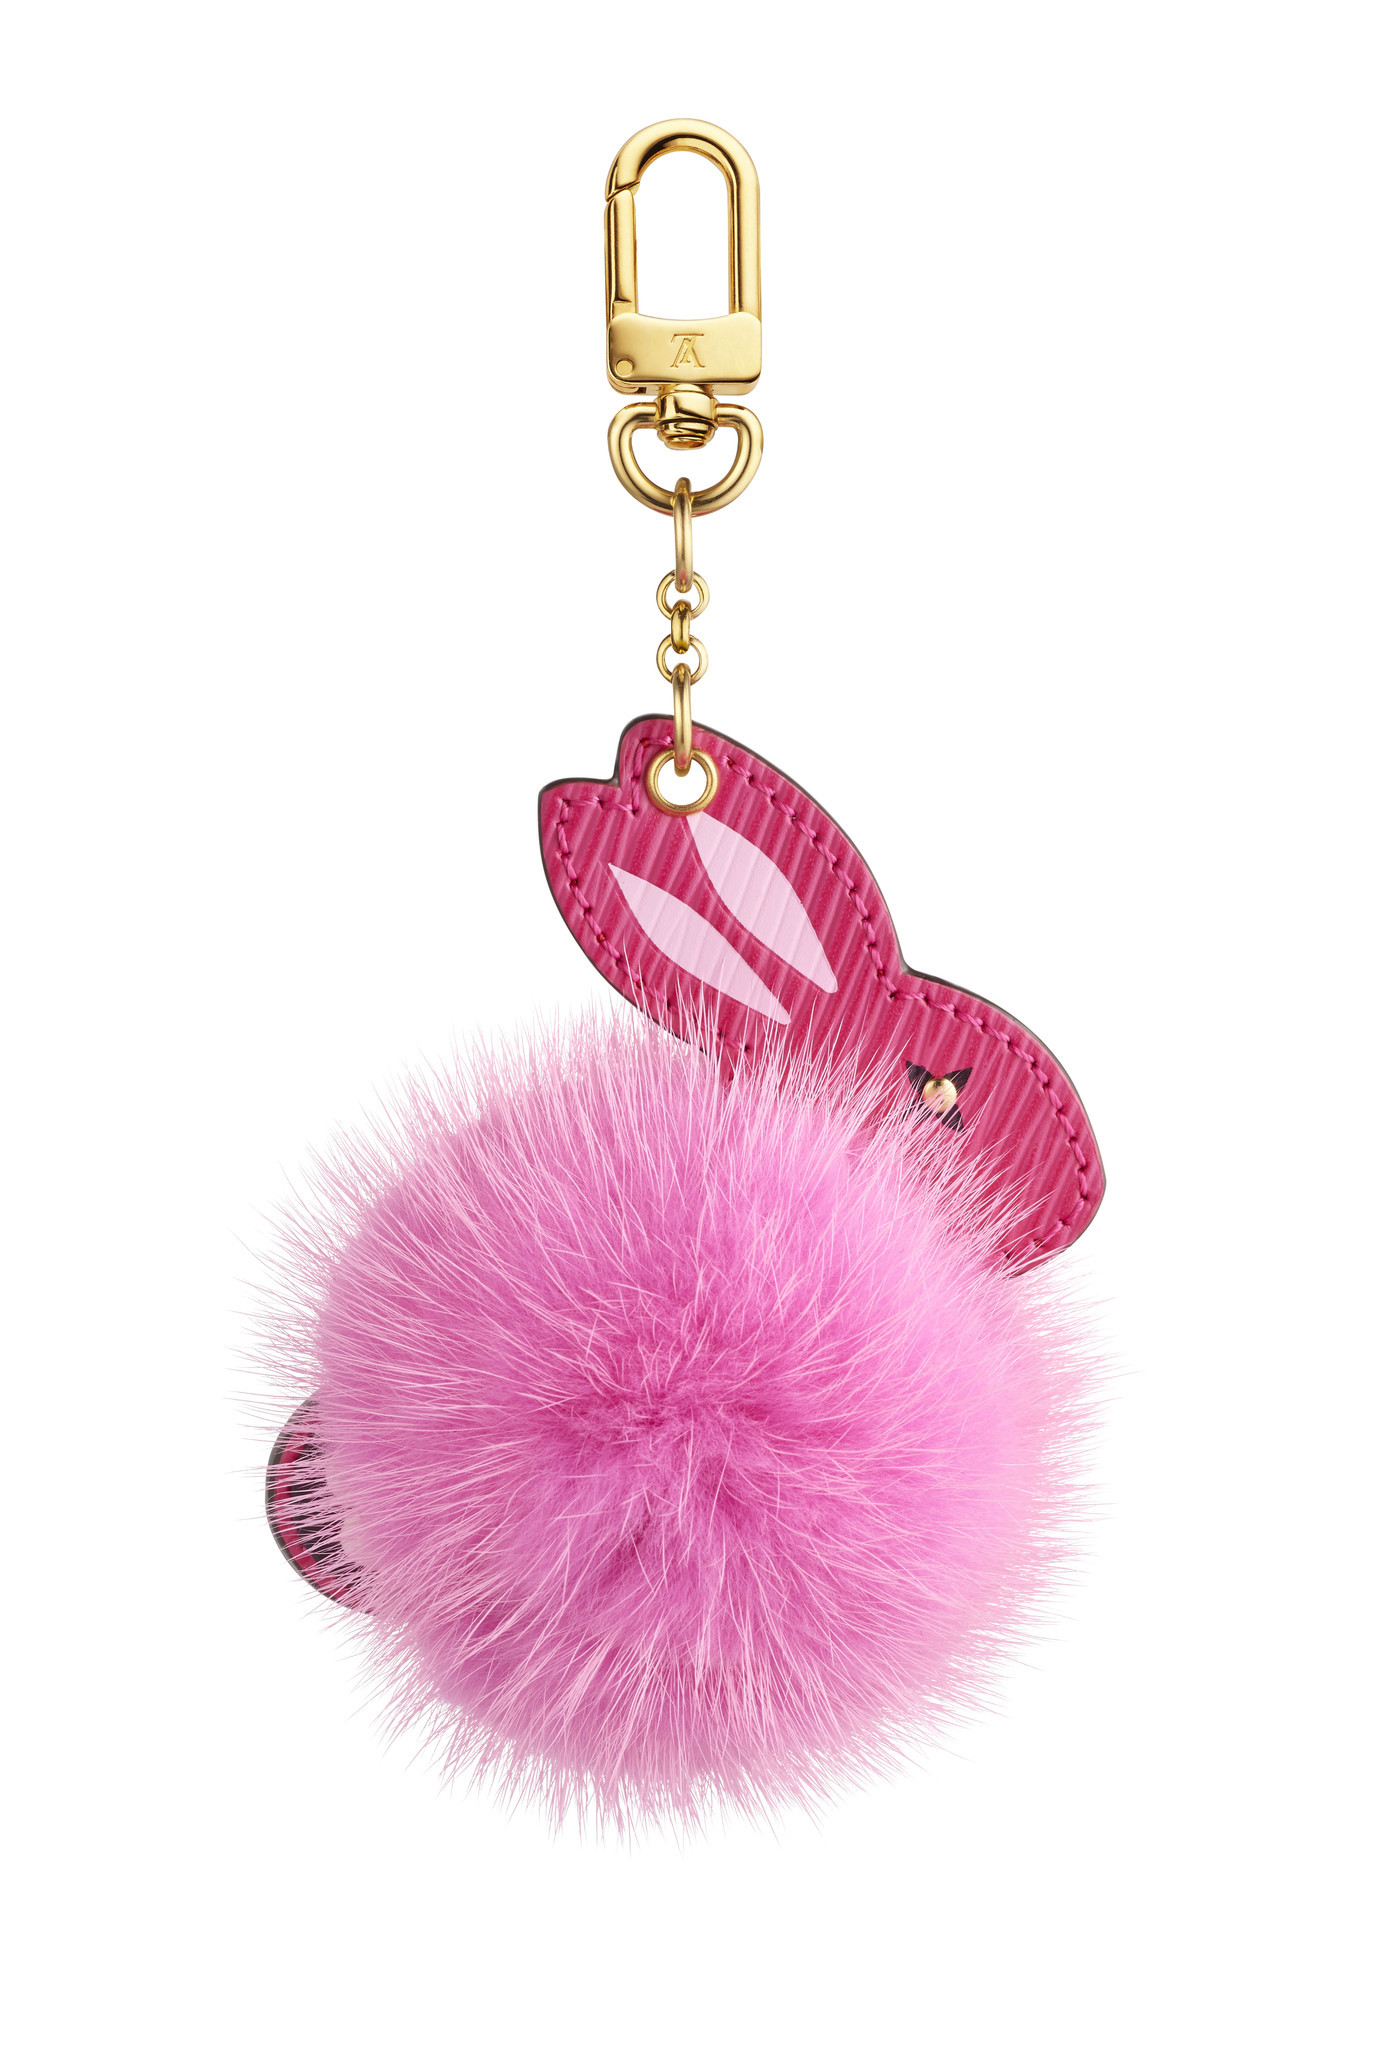 Louis Vuitton's rabbit fur bag charm.